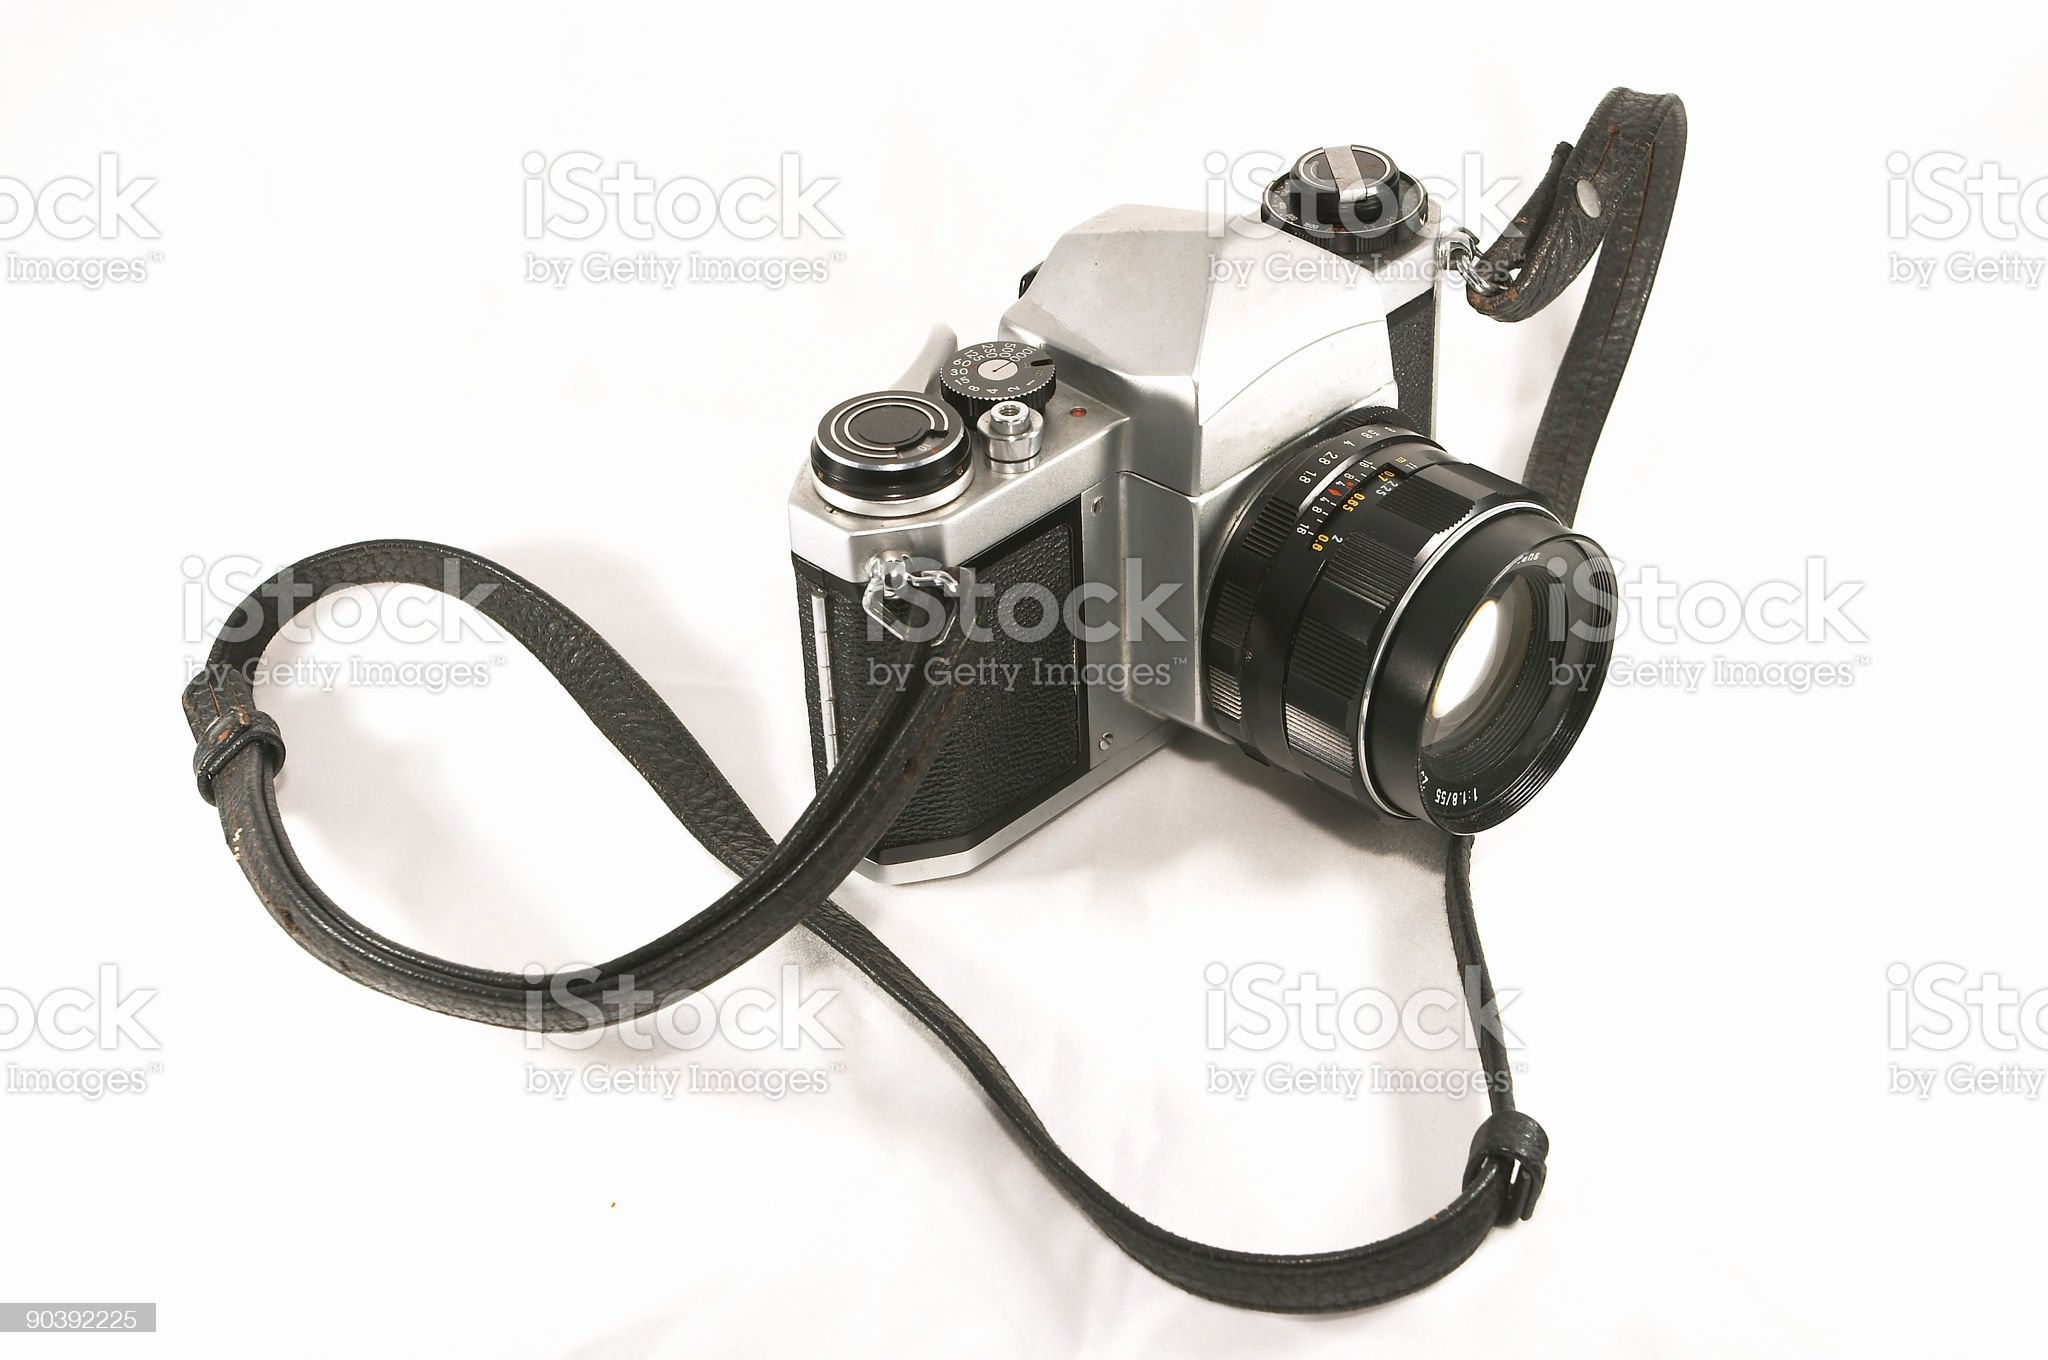 Old mechanical camera royalty-free stock photo